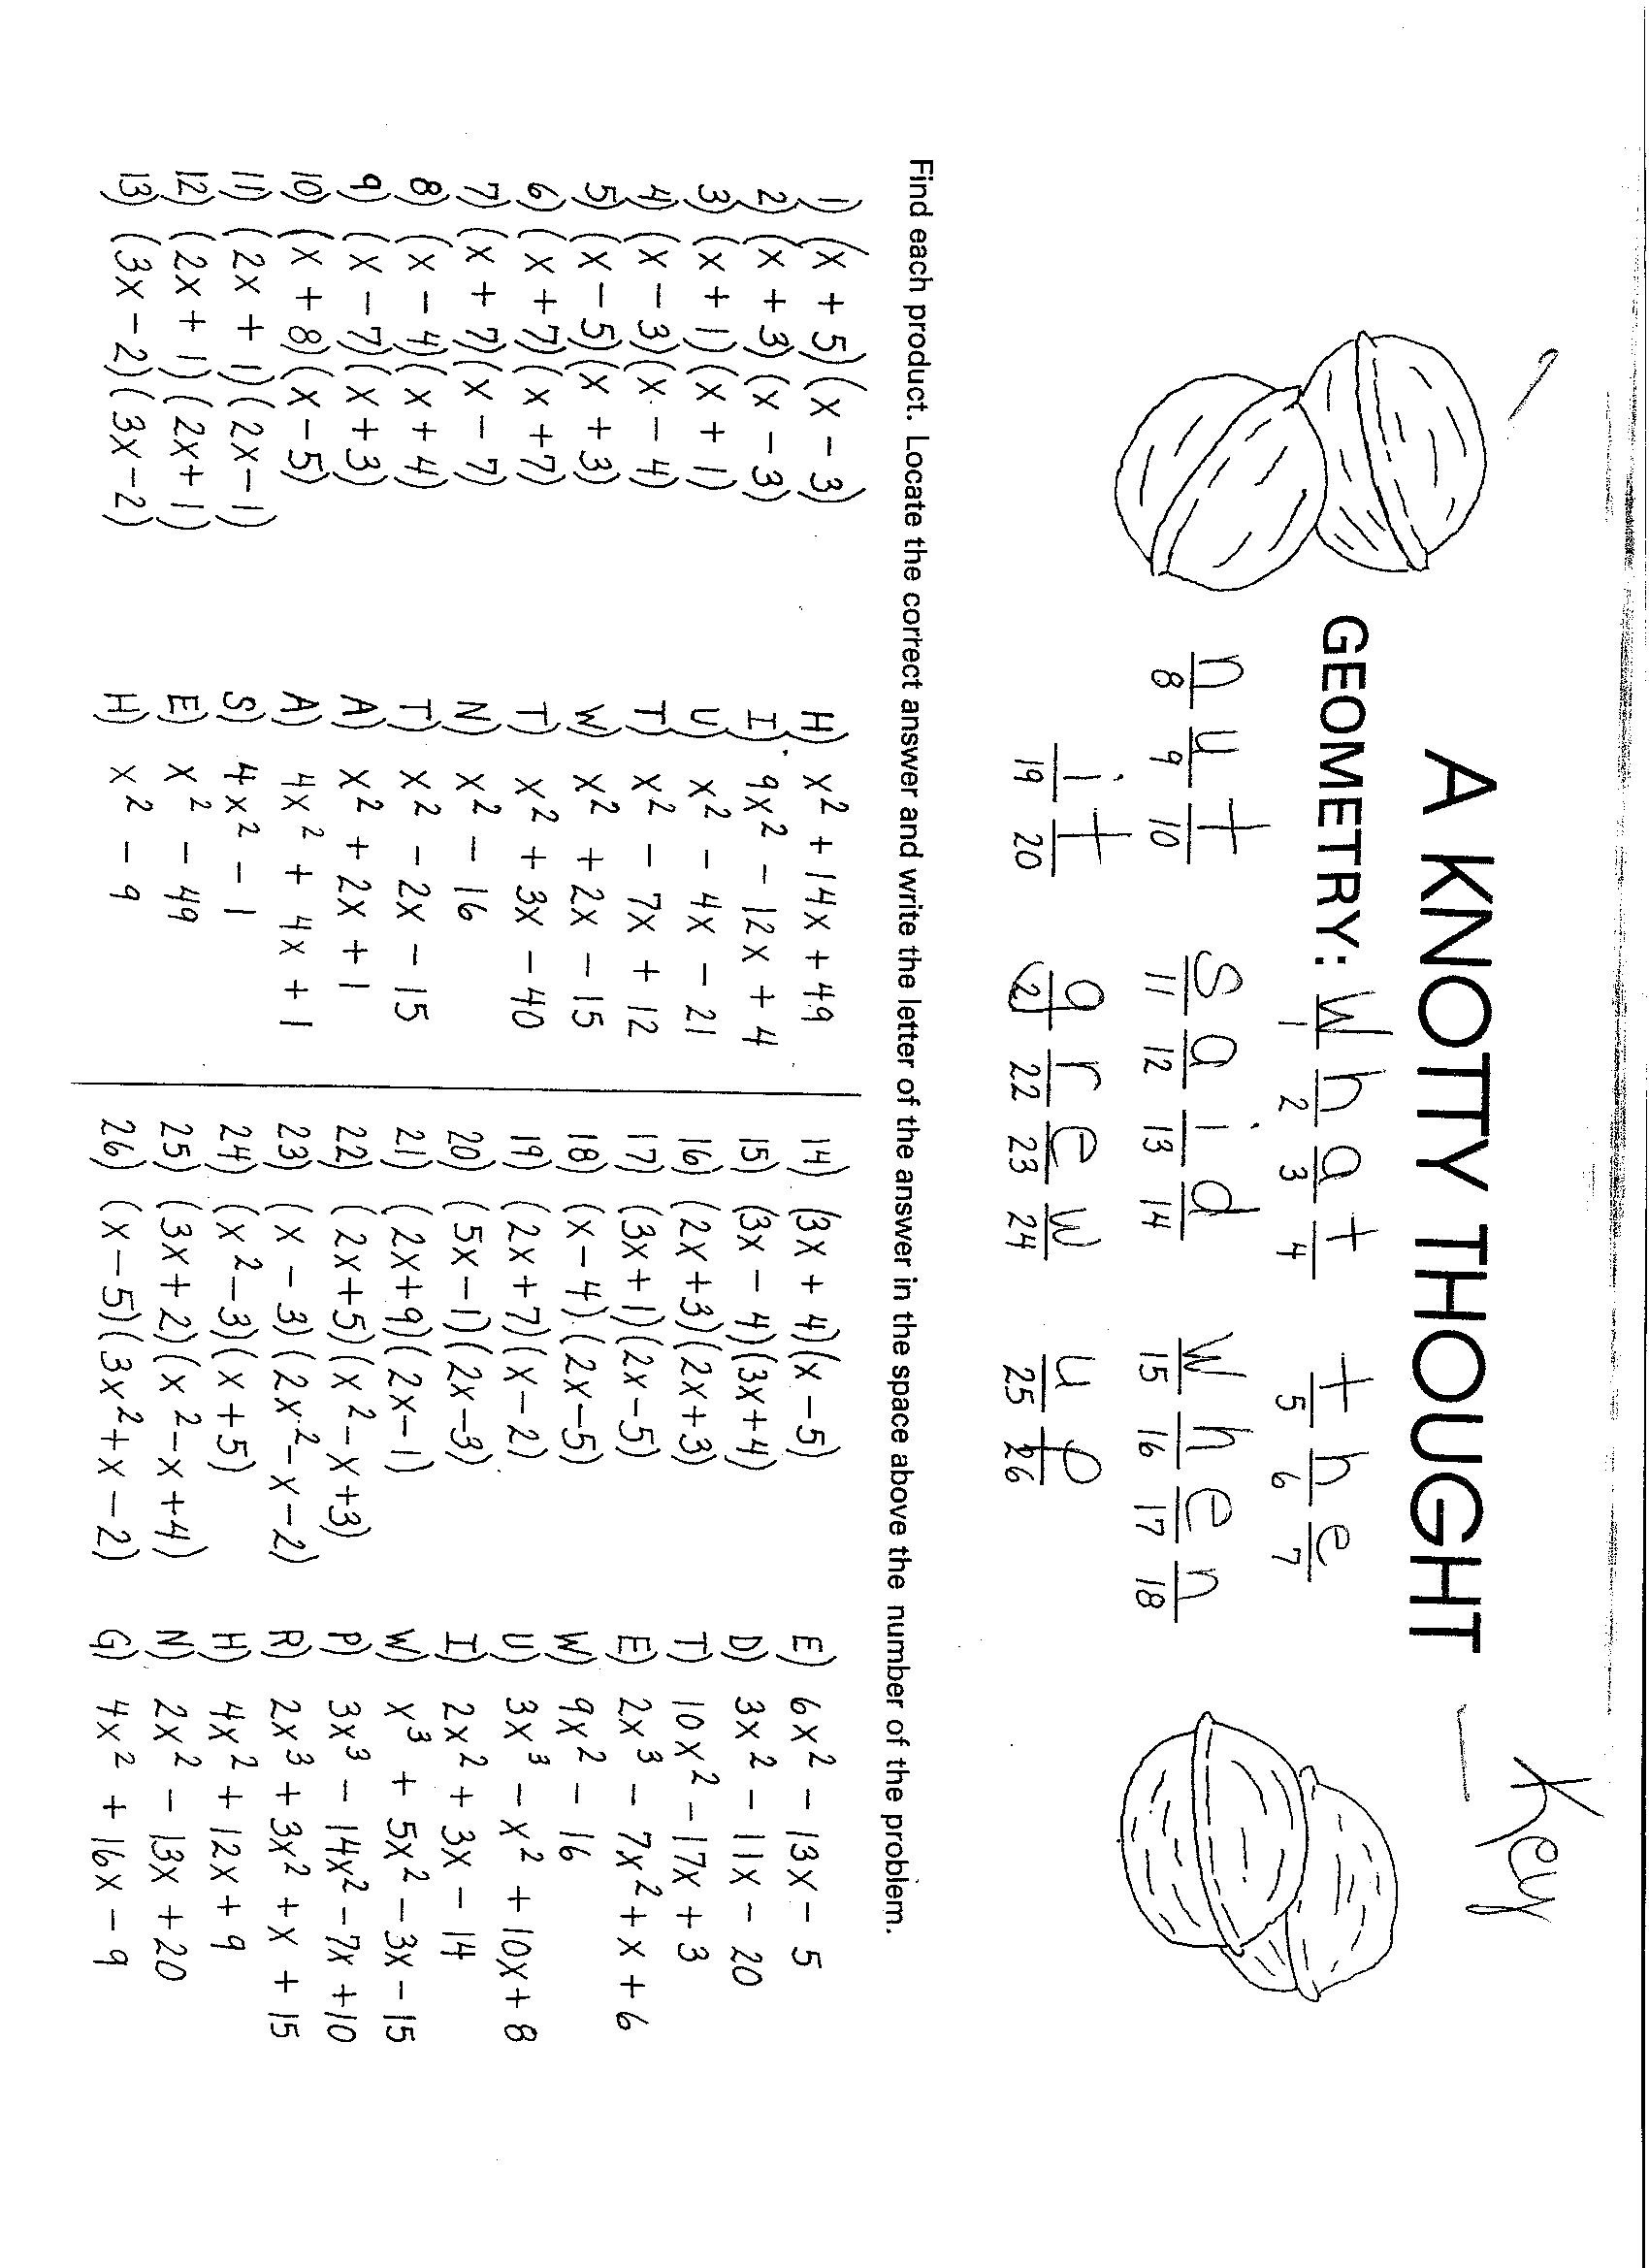 Multiplying Polynomials Worksheet Answers Alex